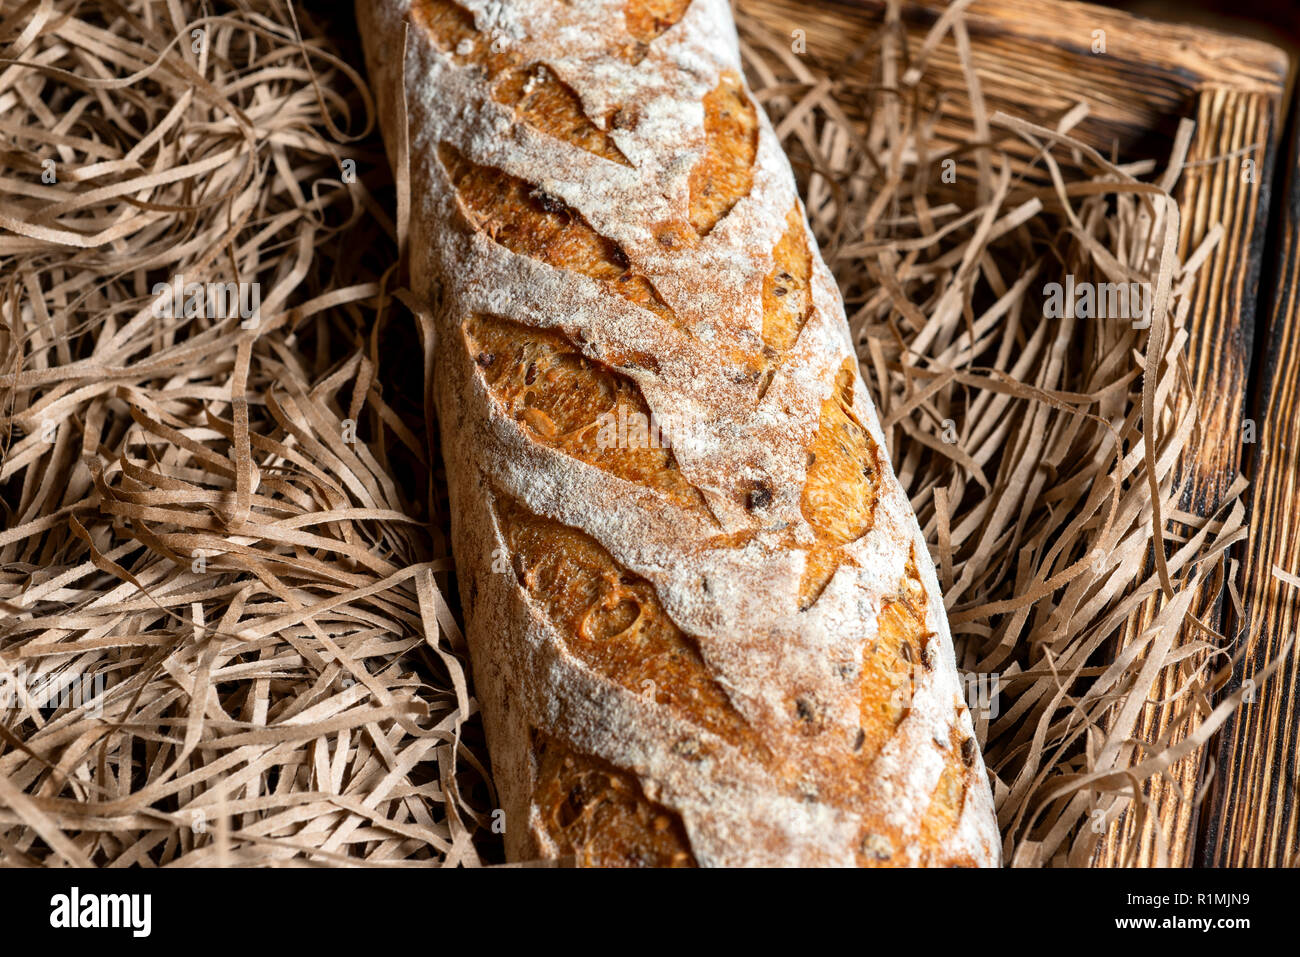 Fresh Bread on brown craft paper on a shop window. Texture and background. - Stock Image